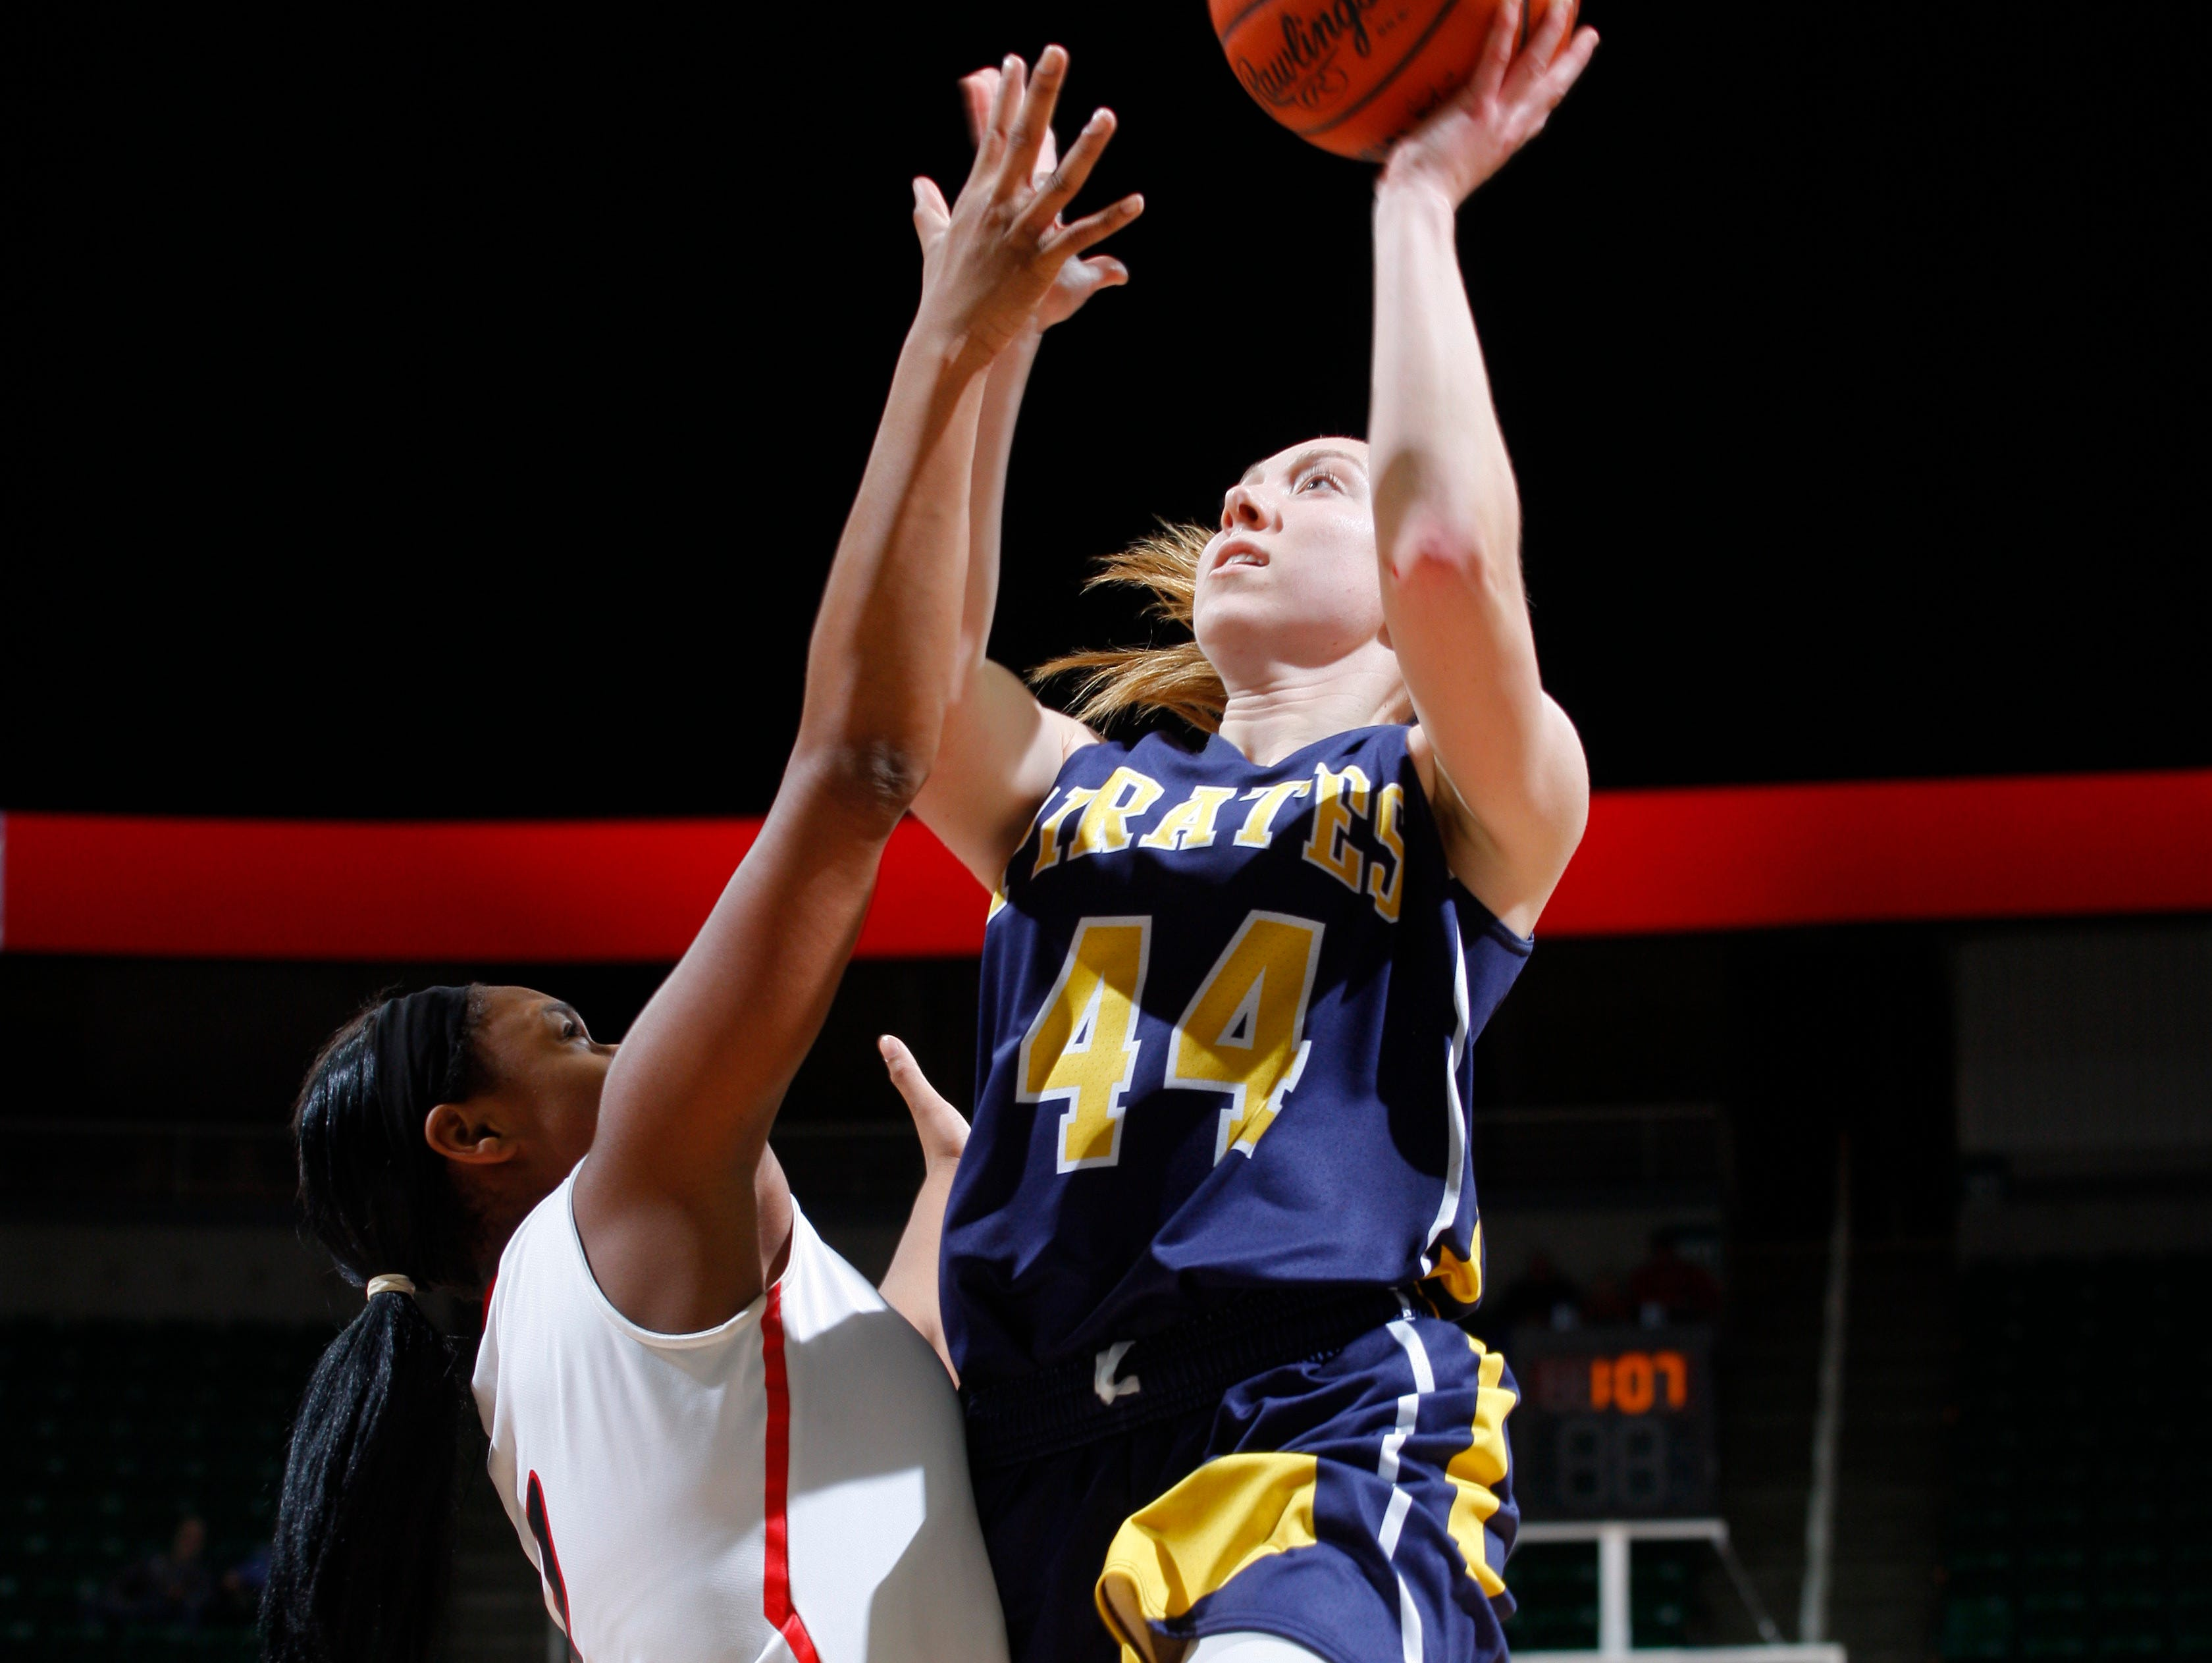 Pewamo-Westphalia's Brenna Wirth (44) goes up for a driving shot against Detroit Edison's Oretha Humphries during their MHSAA Class C championship game, Saturday, March 18, 2017, in East Lansing, Mich. P-W fell 46-44.